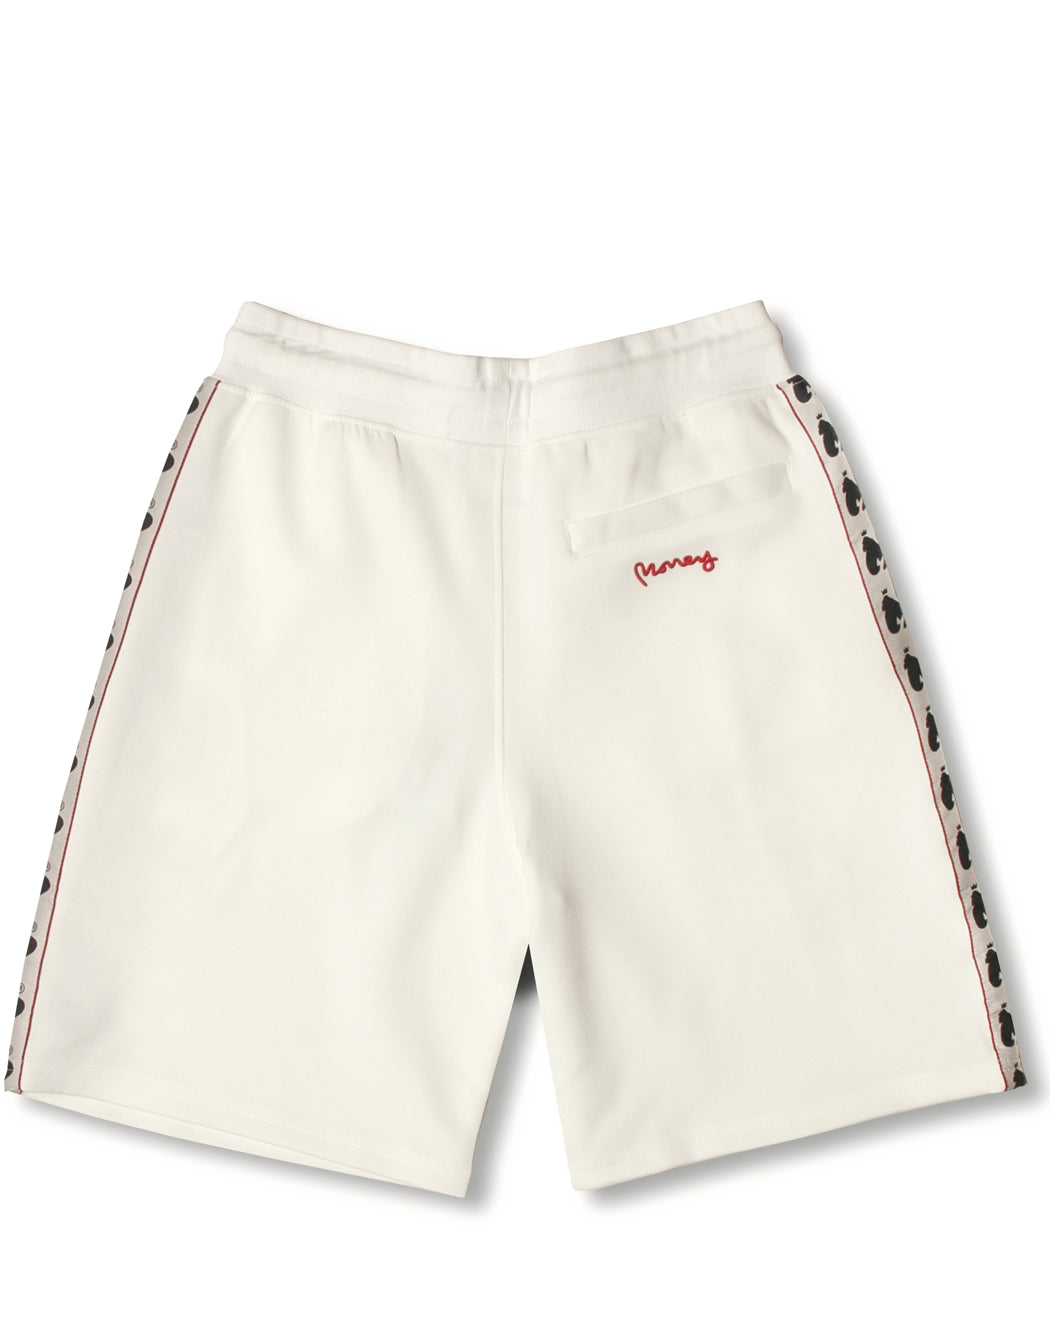 OFF-WHITE SIG LINK TRACK SHORTS